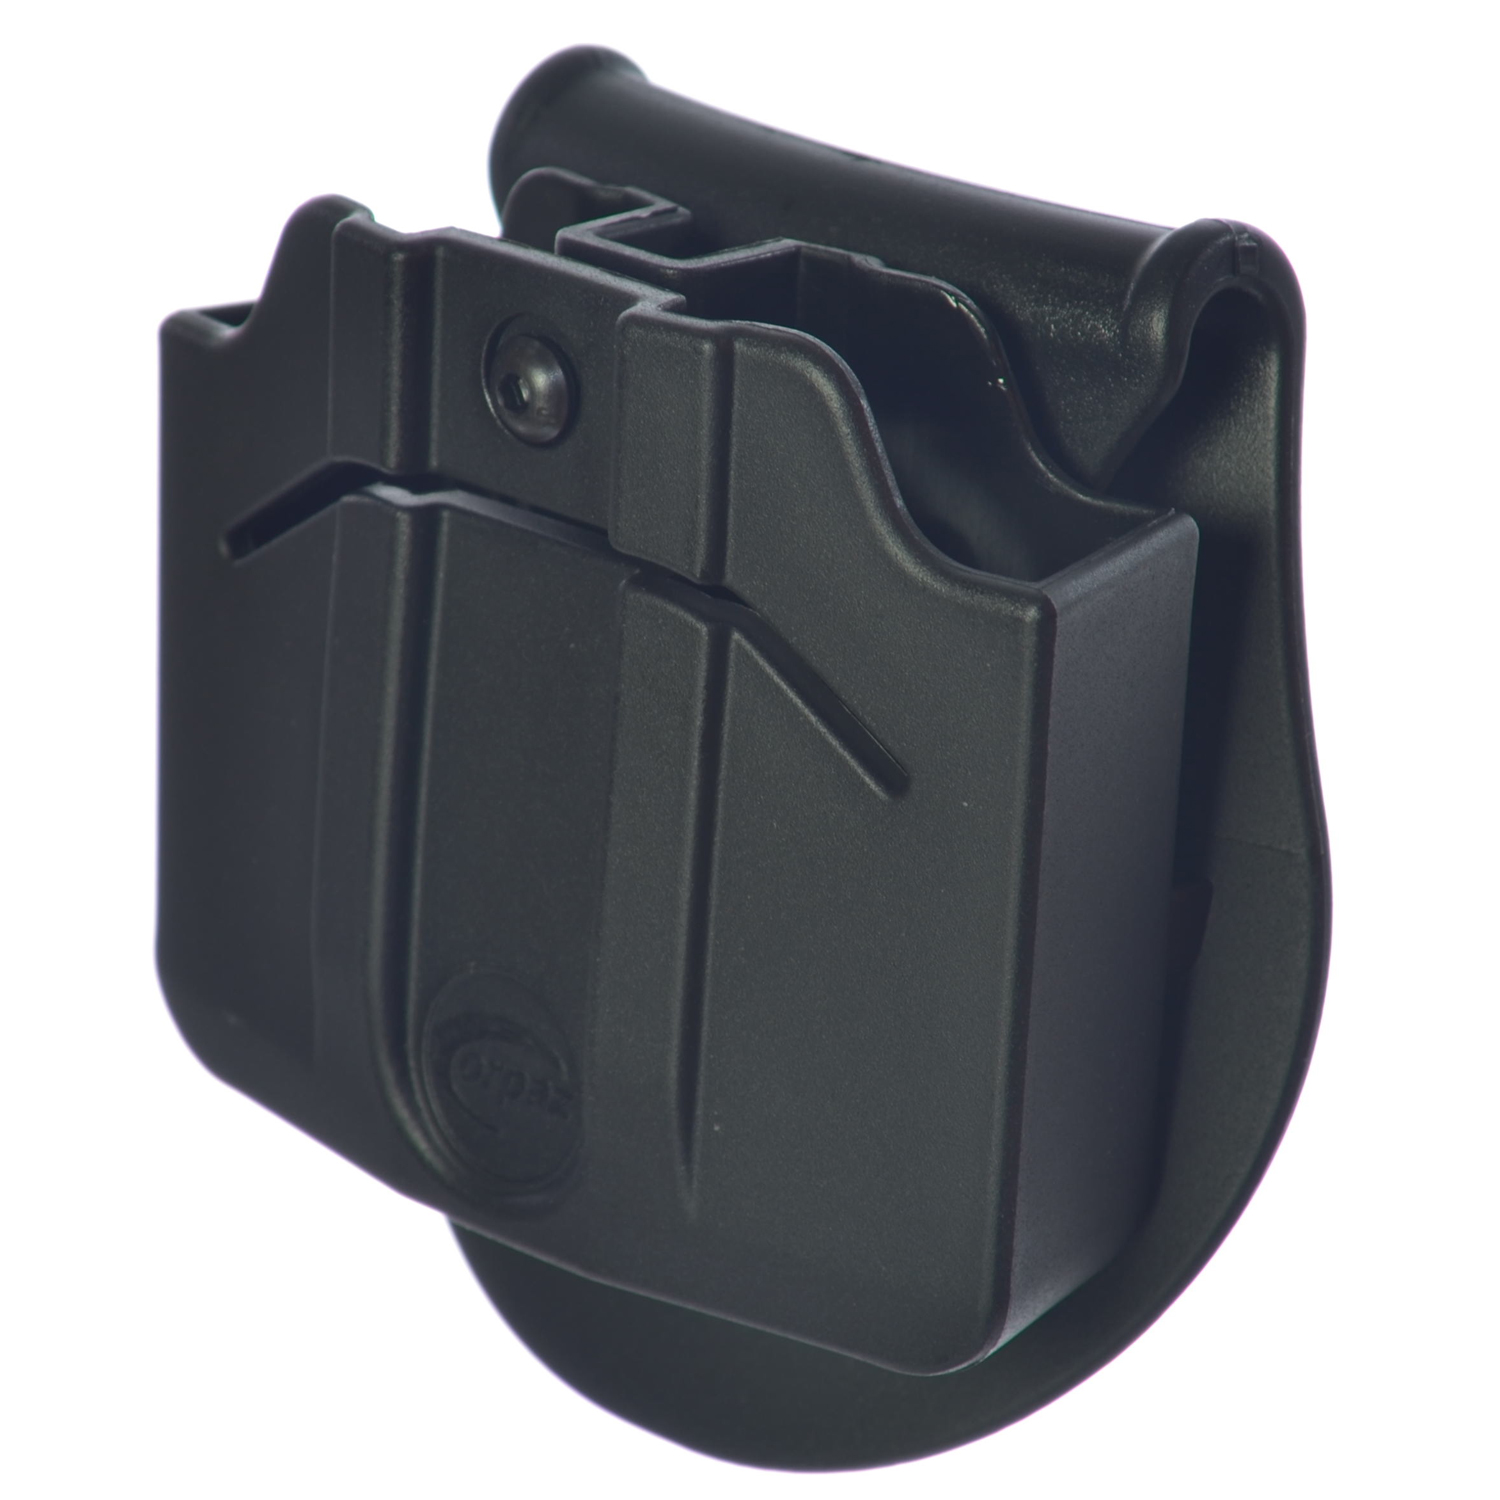 Orpaz Magazine Holster Holds 2 Double Stack 9mm METAL Magazines Fully Adjustable by Orpaz